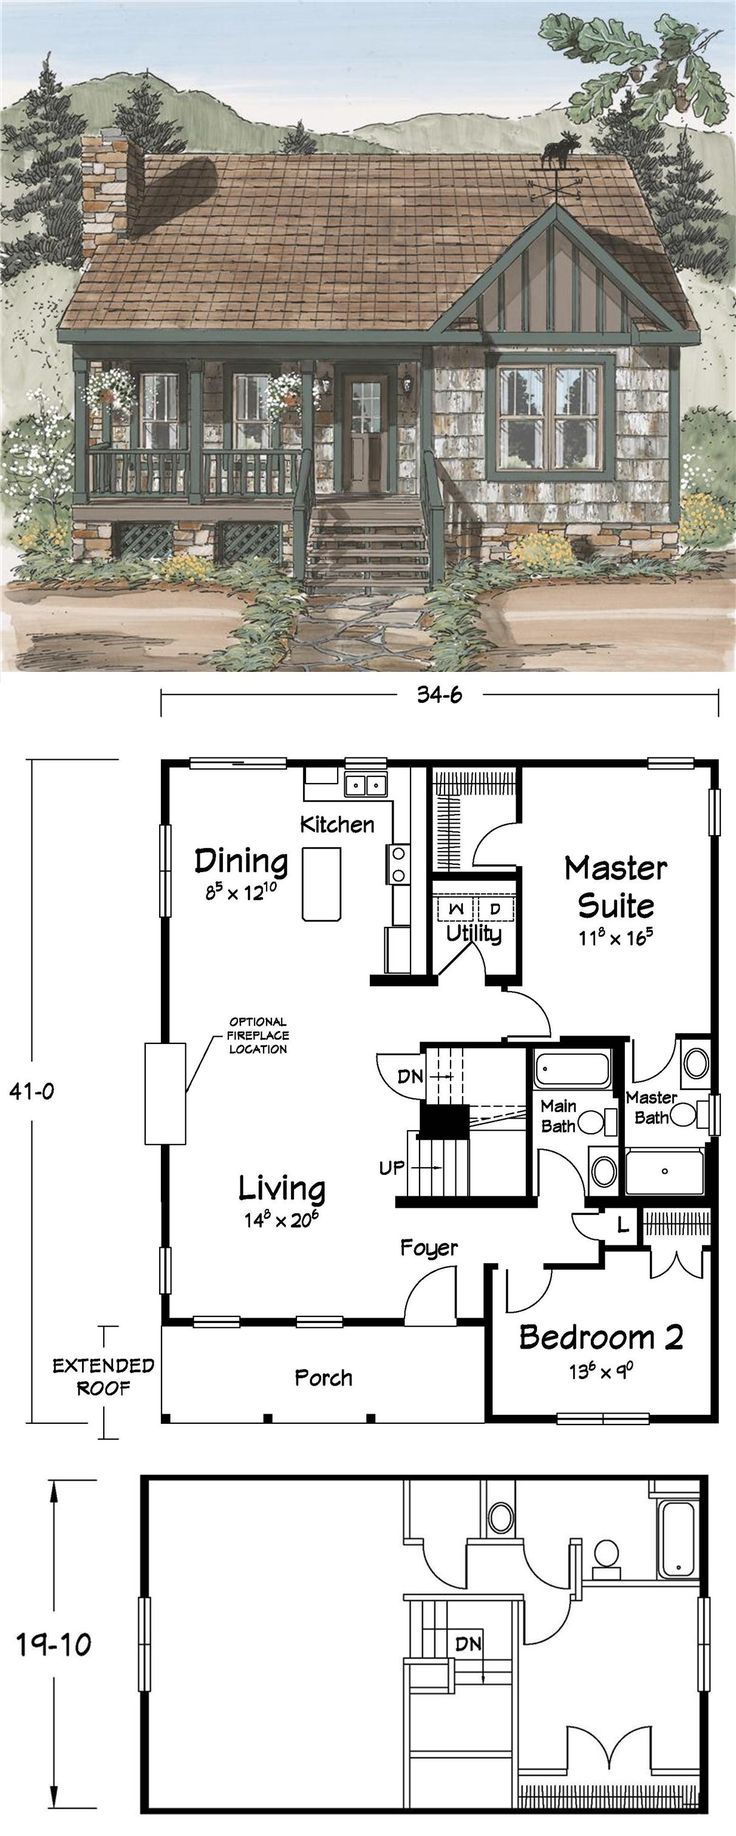 Cute floor plans tiny homes pinterest cabin small for Cabin house plans